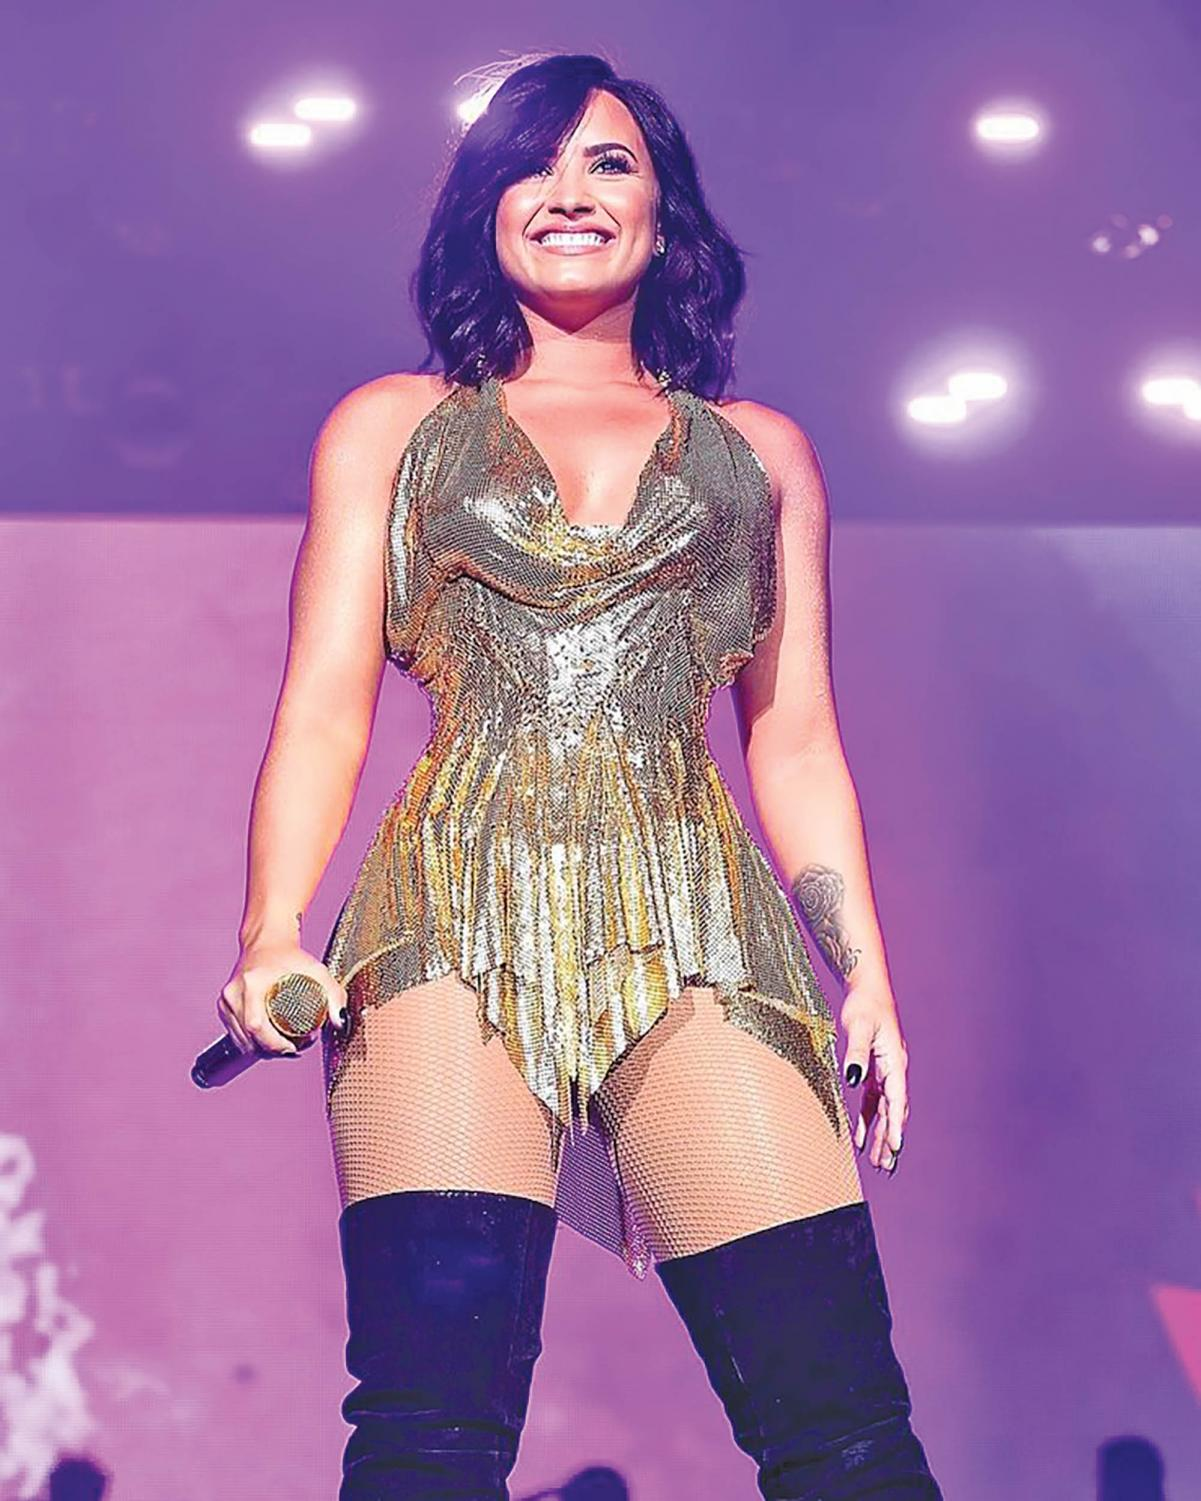 Lovato has faced backlash on Twitter before, most recently following her drug overdose last July.